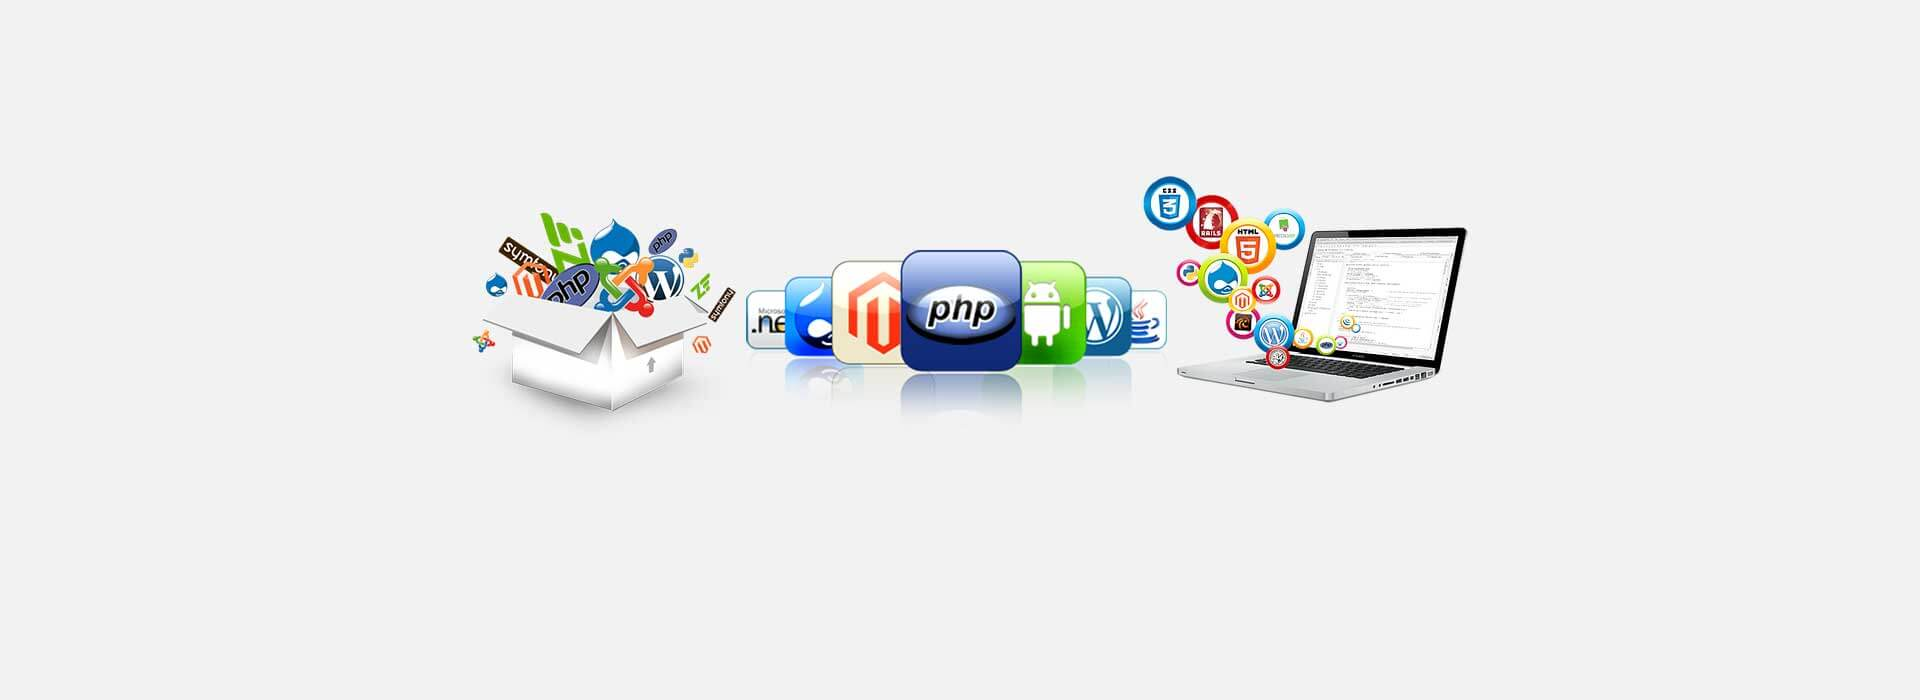 web application development companies in hyderabad